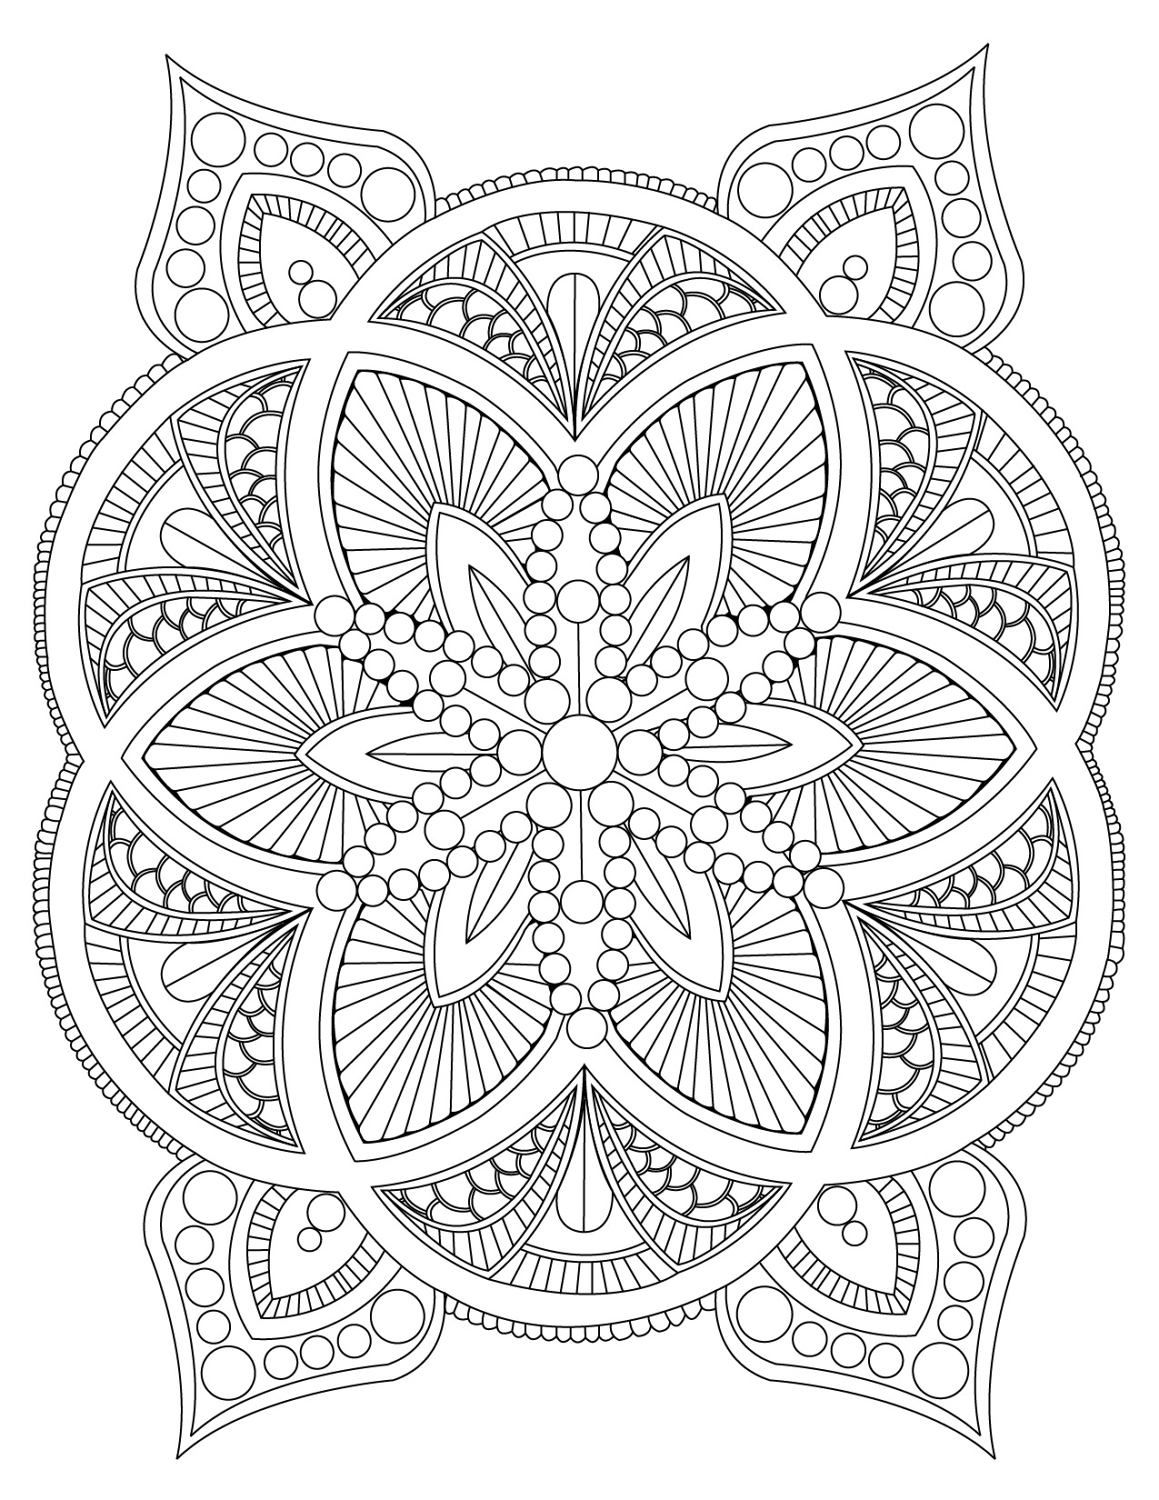 Abstract Mandala Coloring Page for Adults Digital Download ...Detailed Mandala Coloring Pages For Adults